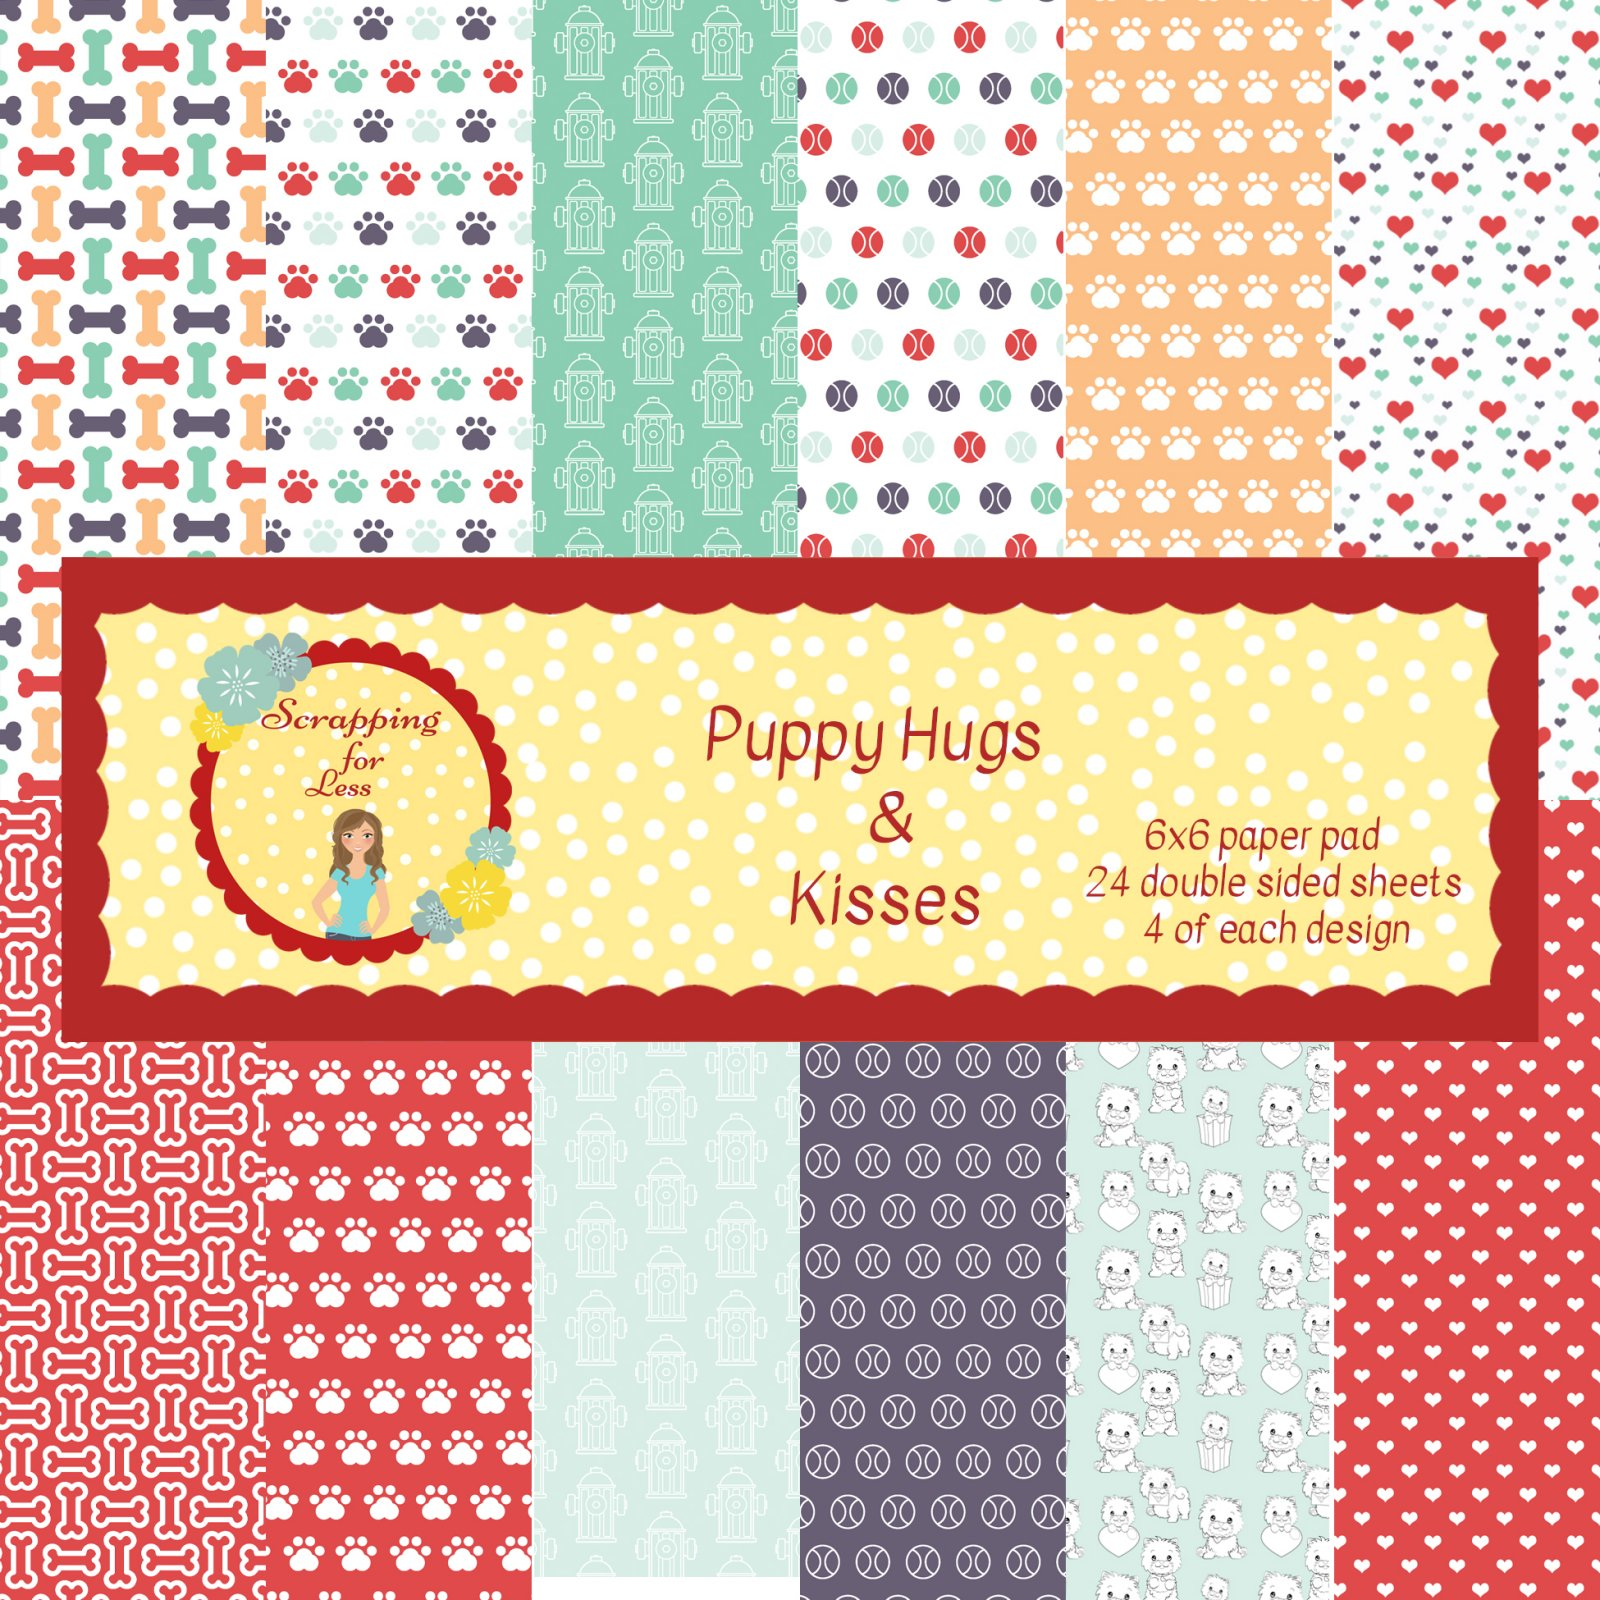 Scrapping for Less Puppy Hugs and Kisses 6x6 Paper Pad